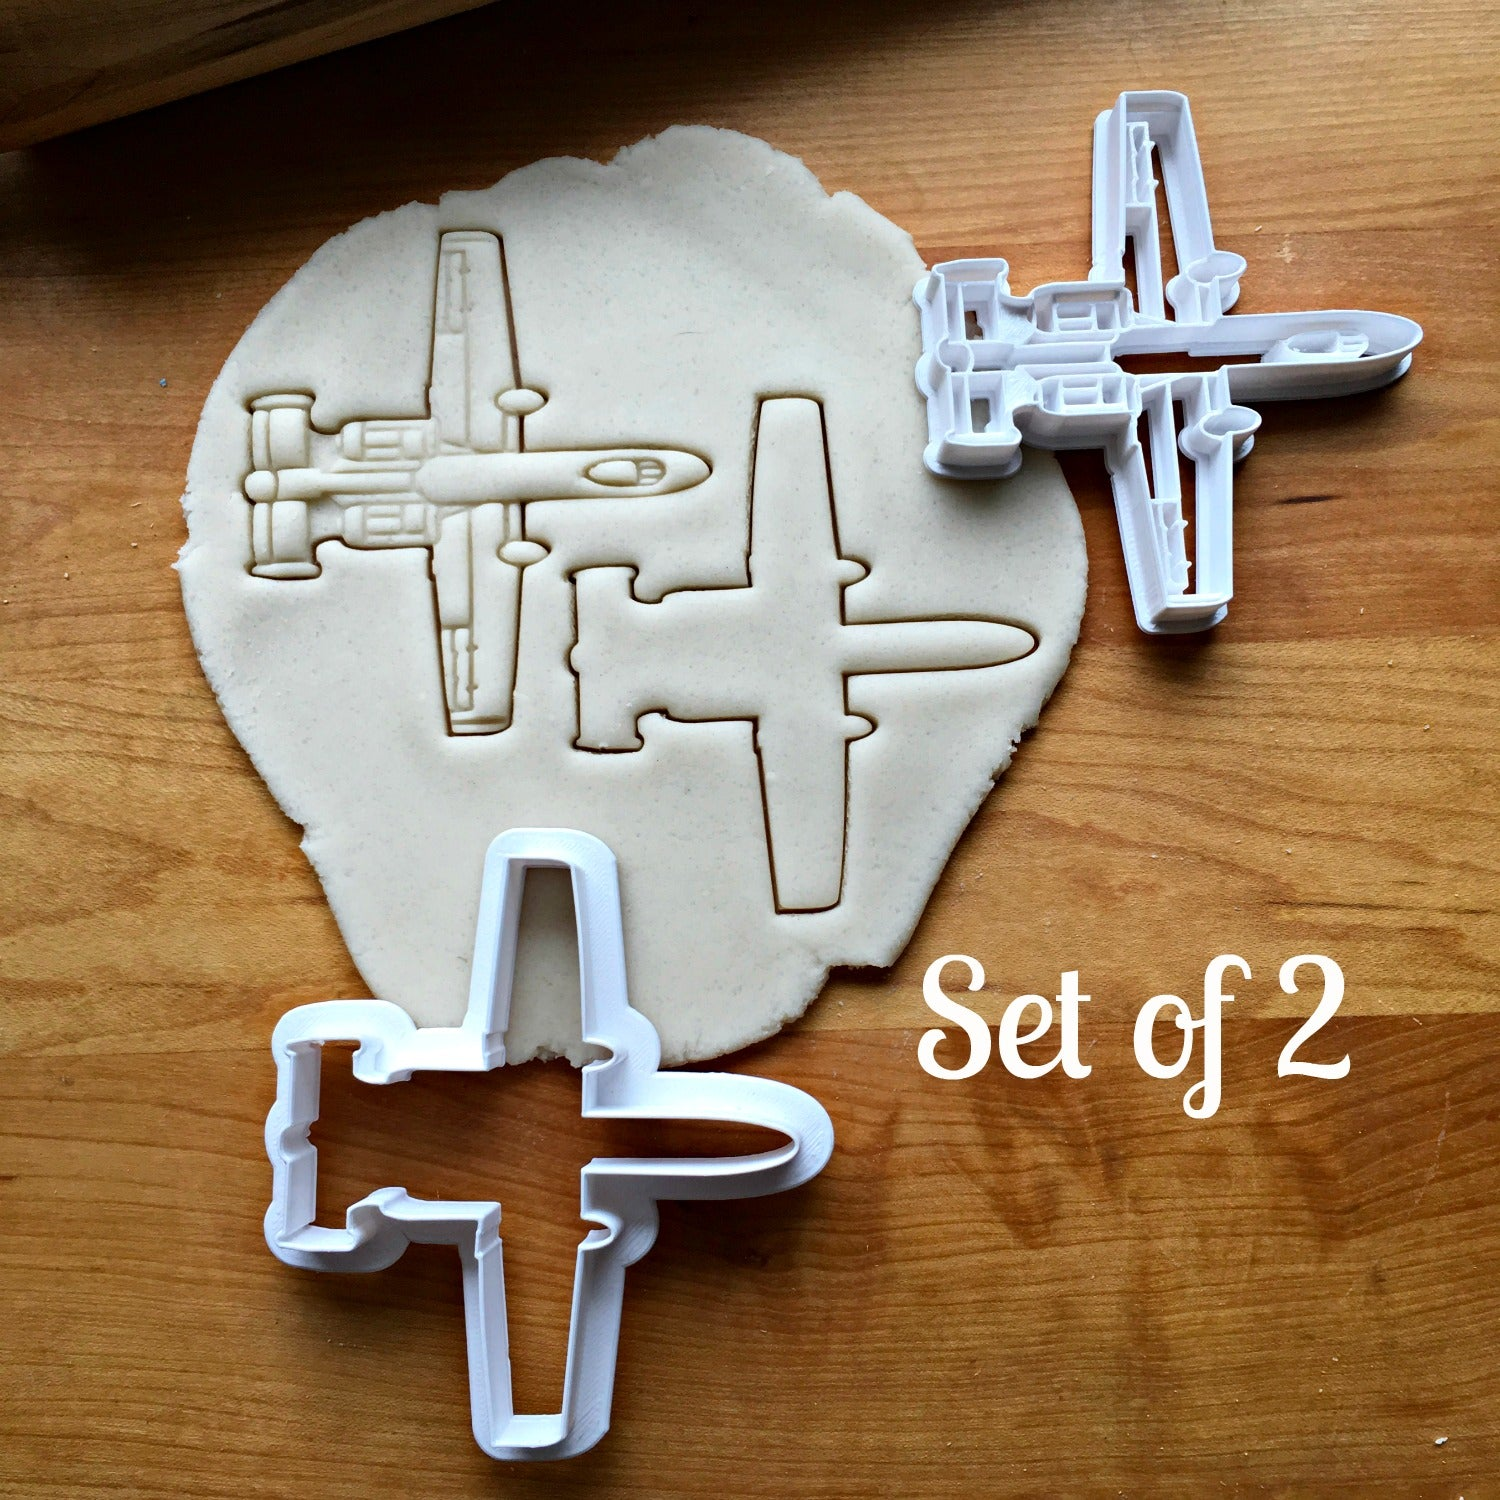 Set of 2 Attack Jet Fighter Cookie Cutters/Multi-Size/Dishwasher Safe